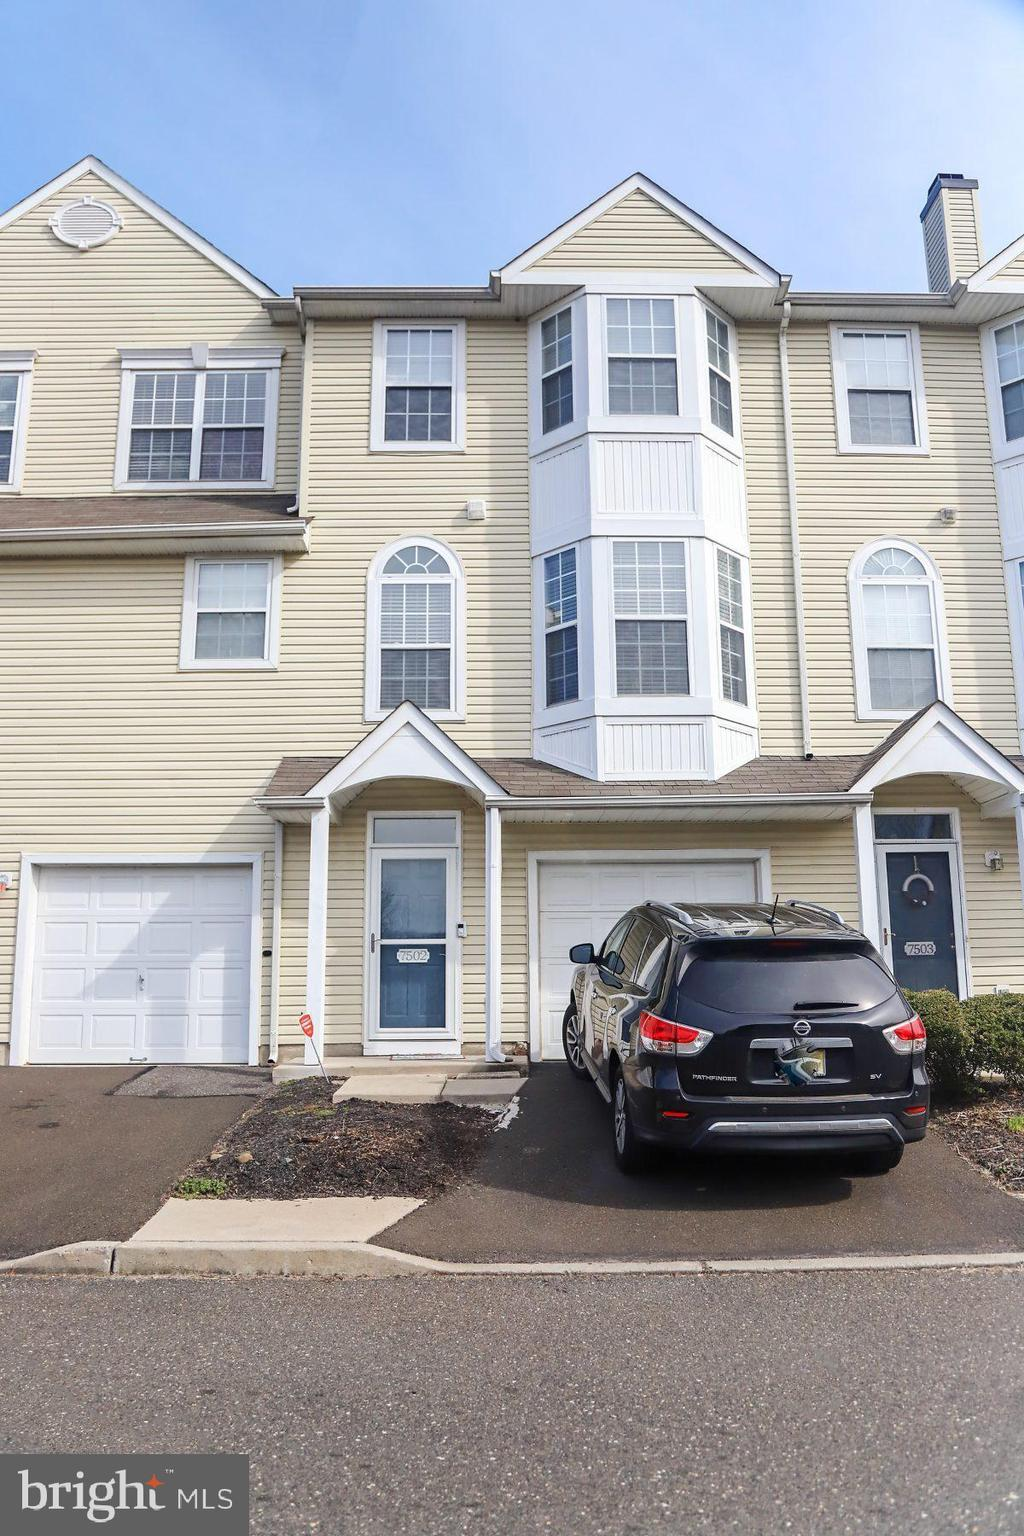 7502 JUNIPER LANE, PALMYRA, NJ 08065